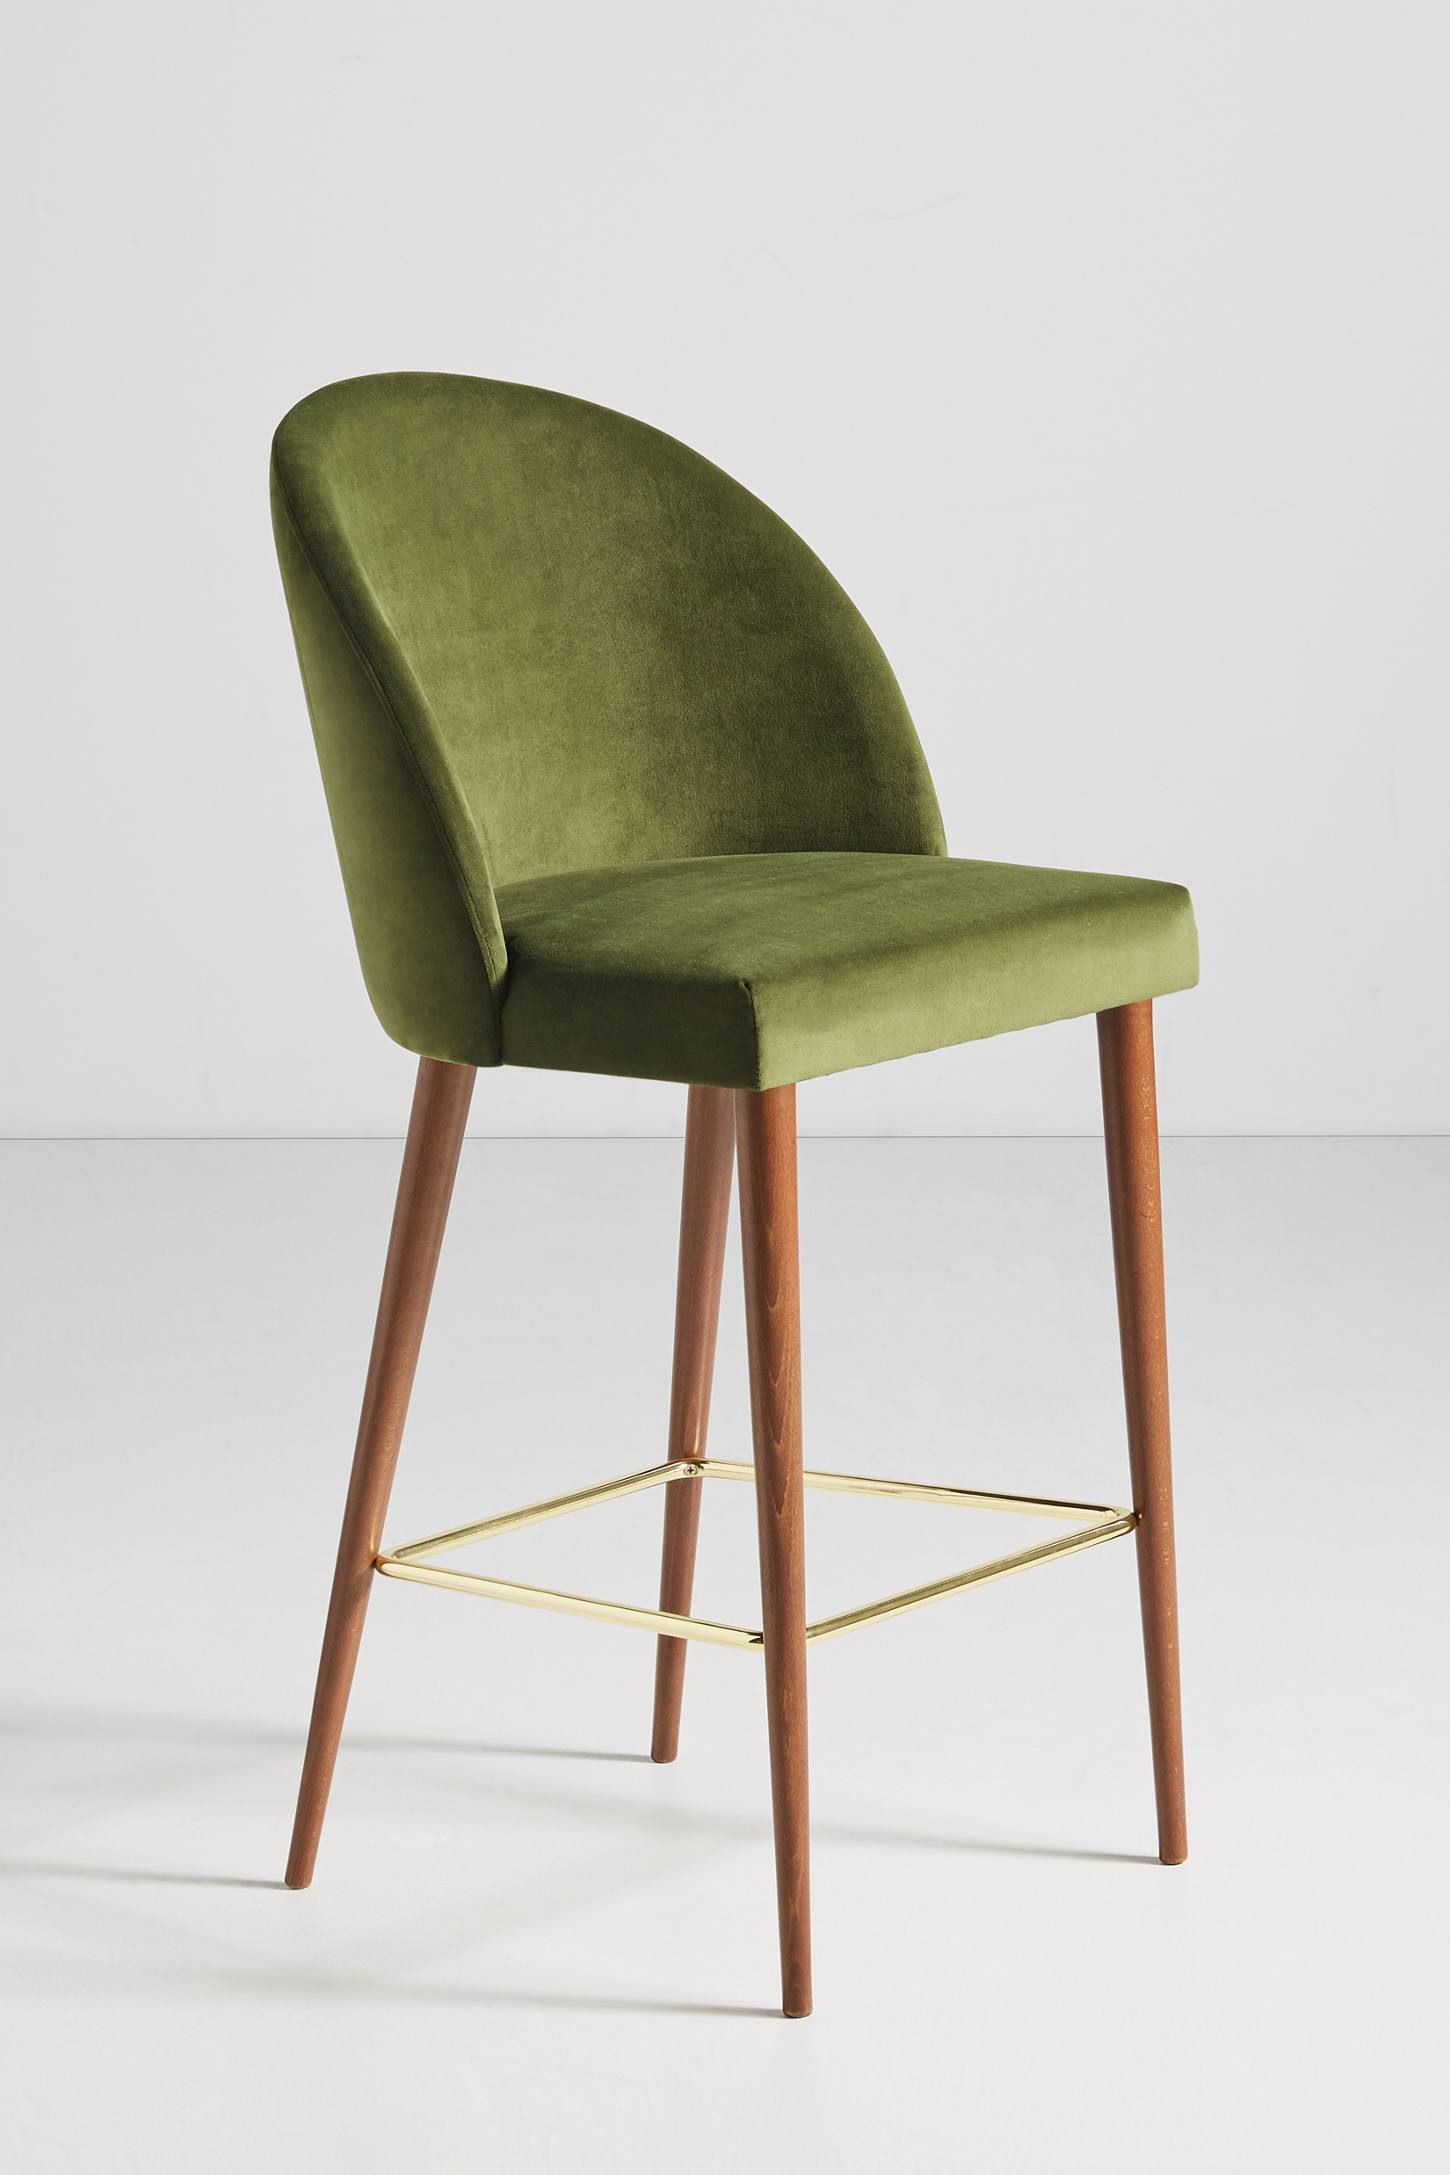 Astounding Velvet Moritz Counter Stool In 2019 Counter Stools Machost Co Dining Chair Design Ideas Machostcouk